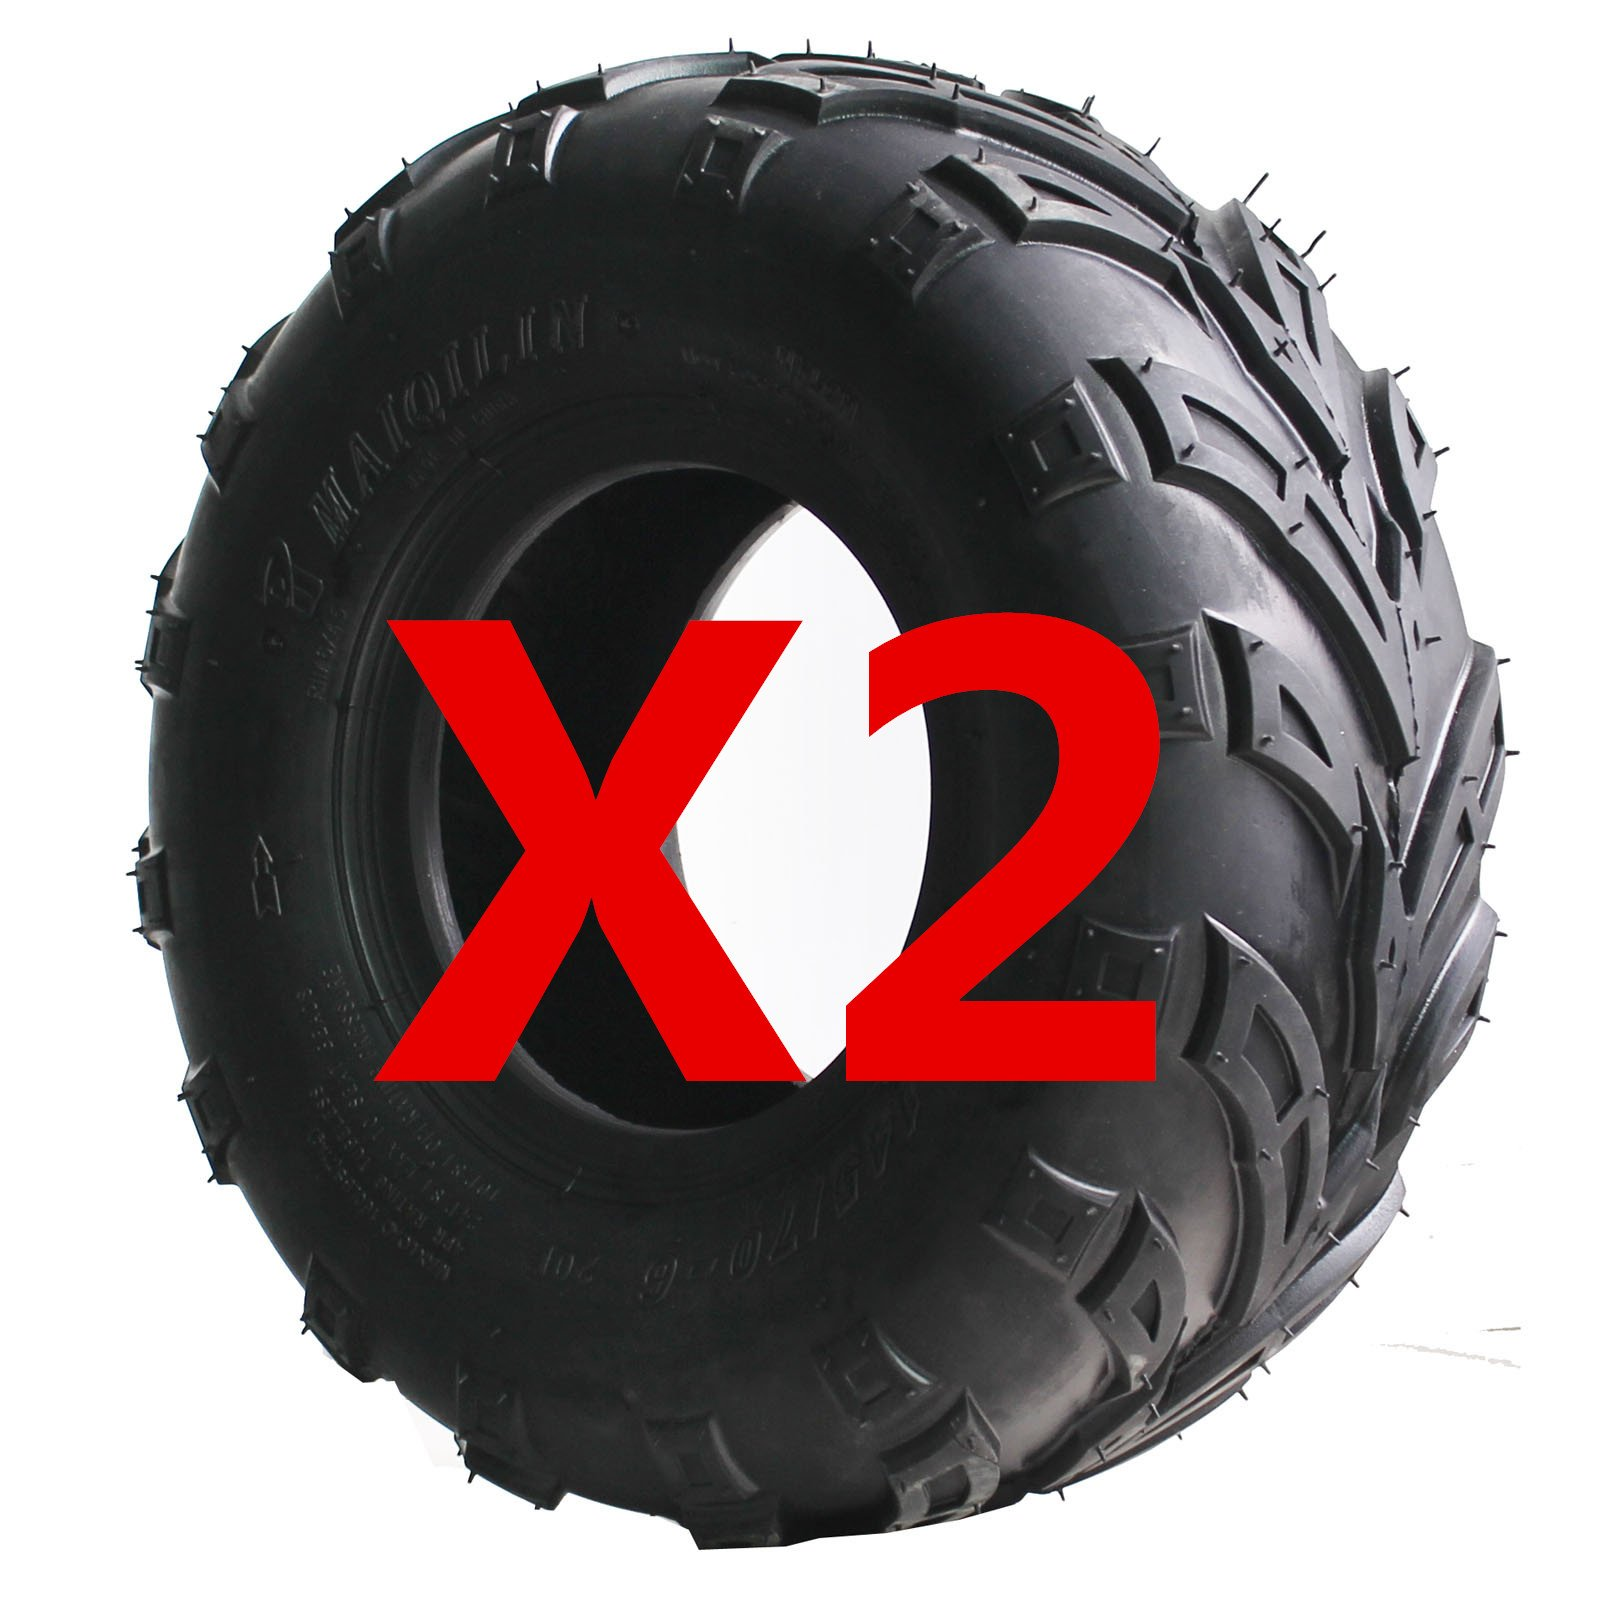 AR DONGFANG ATV Tires 145/70-6 Quad Tire UTV Go Kart Tires ATV Tire 4PR Tubeless 145 70 6 (2)